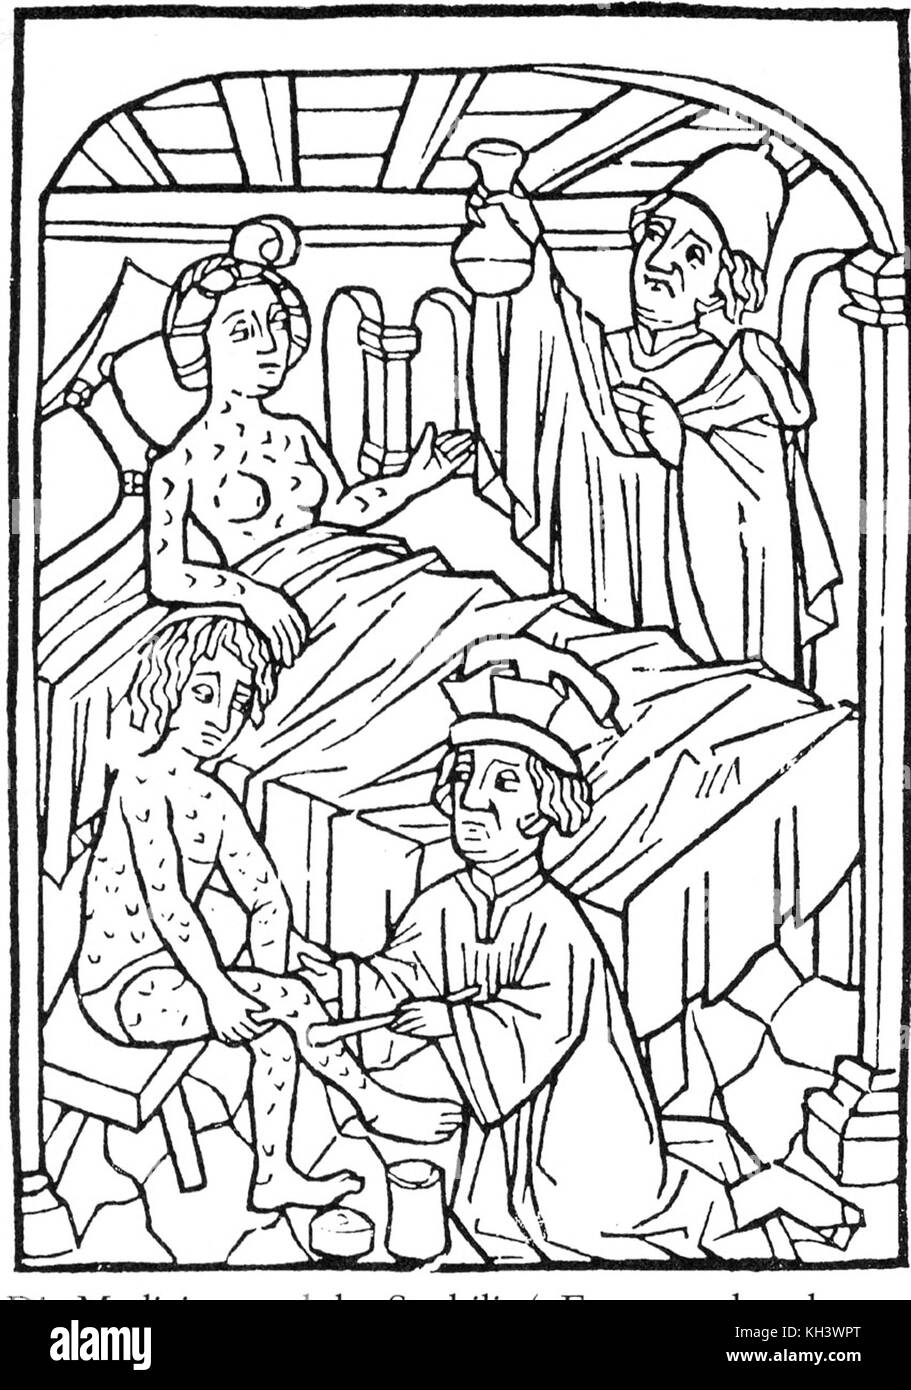 Syphilis. An early medical illustration of people with syphilis, Vienna, 1498 - Stock Image